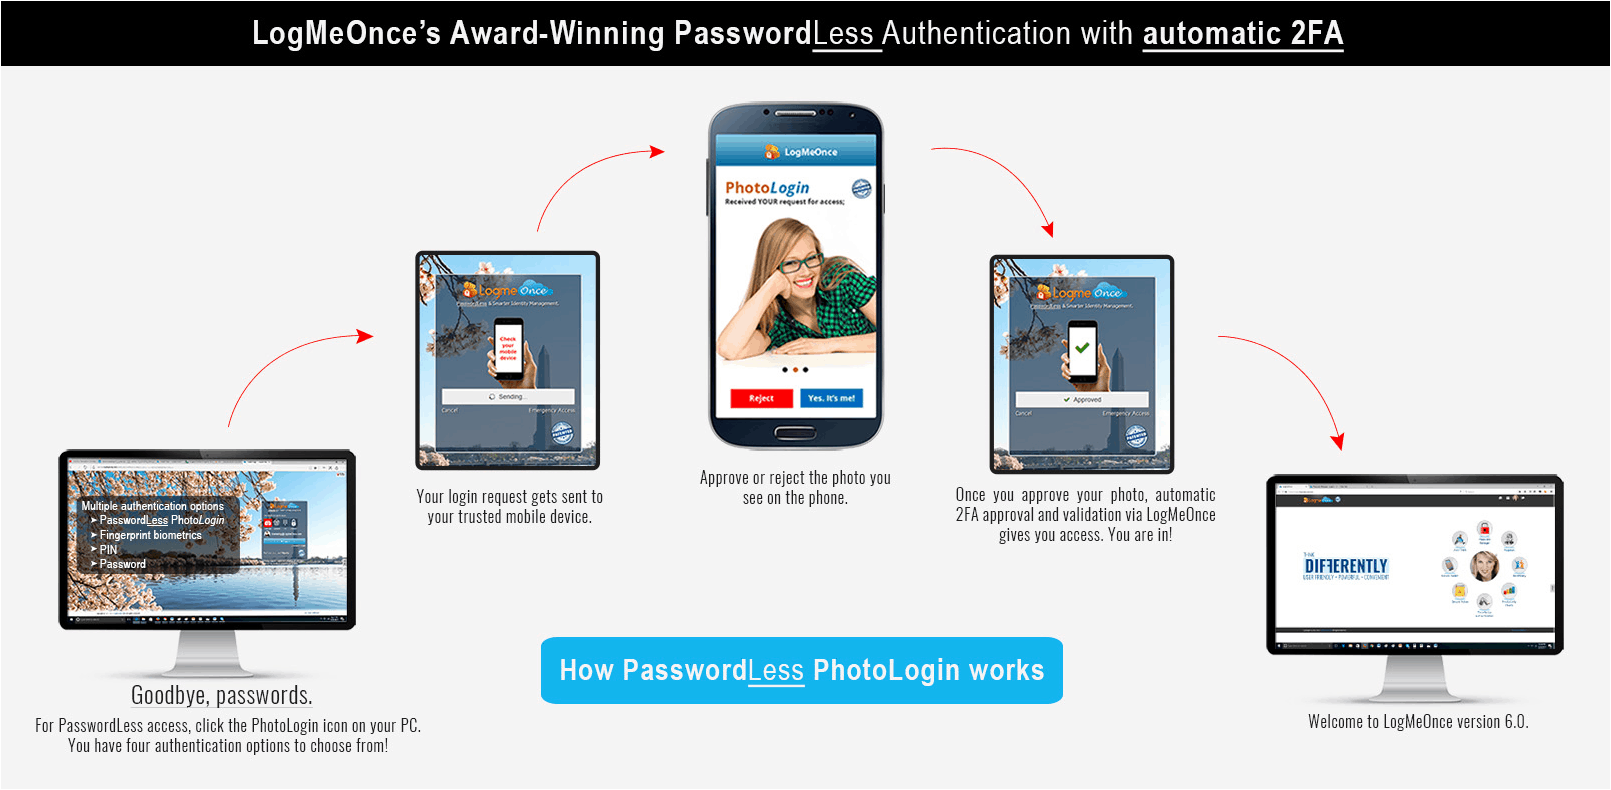 passwordless authentication